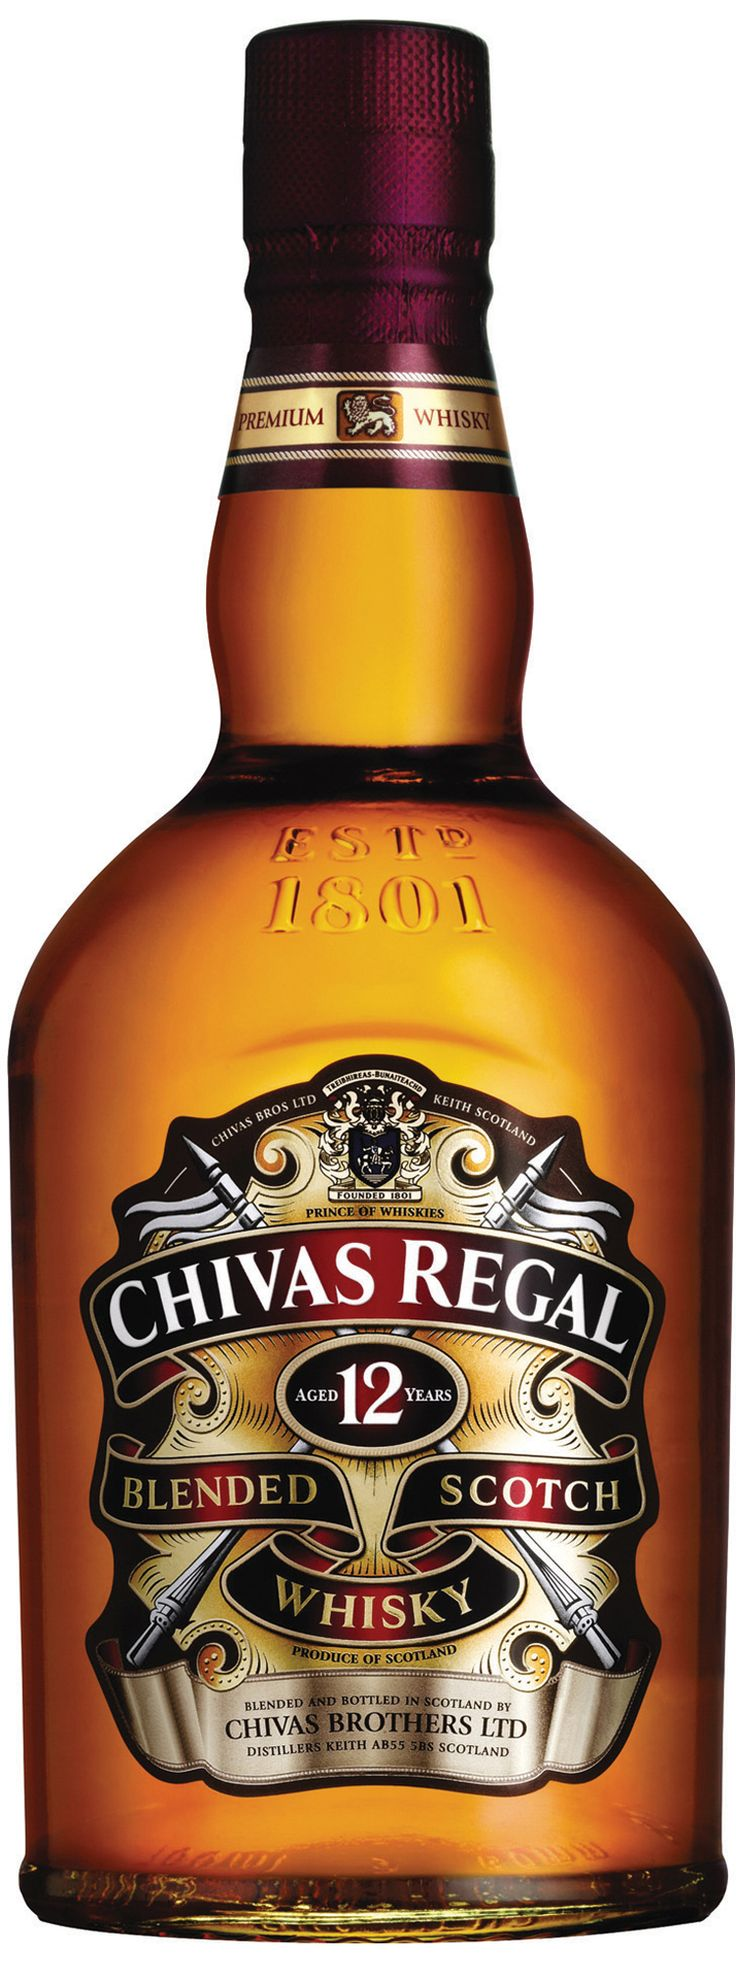 "Blended Scotch Whisky ""Chivas Regal 12 Years"" - Chivas Brothers Ltd, Escocia, UK"